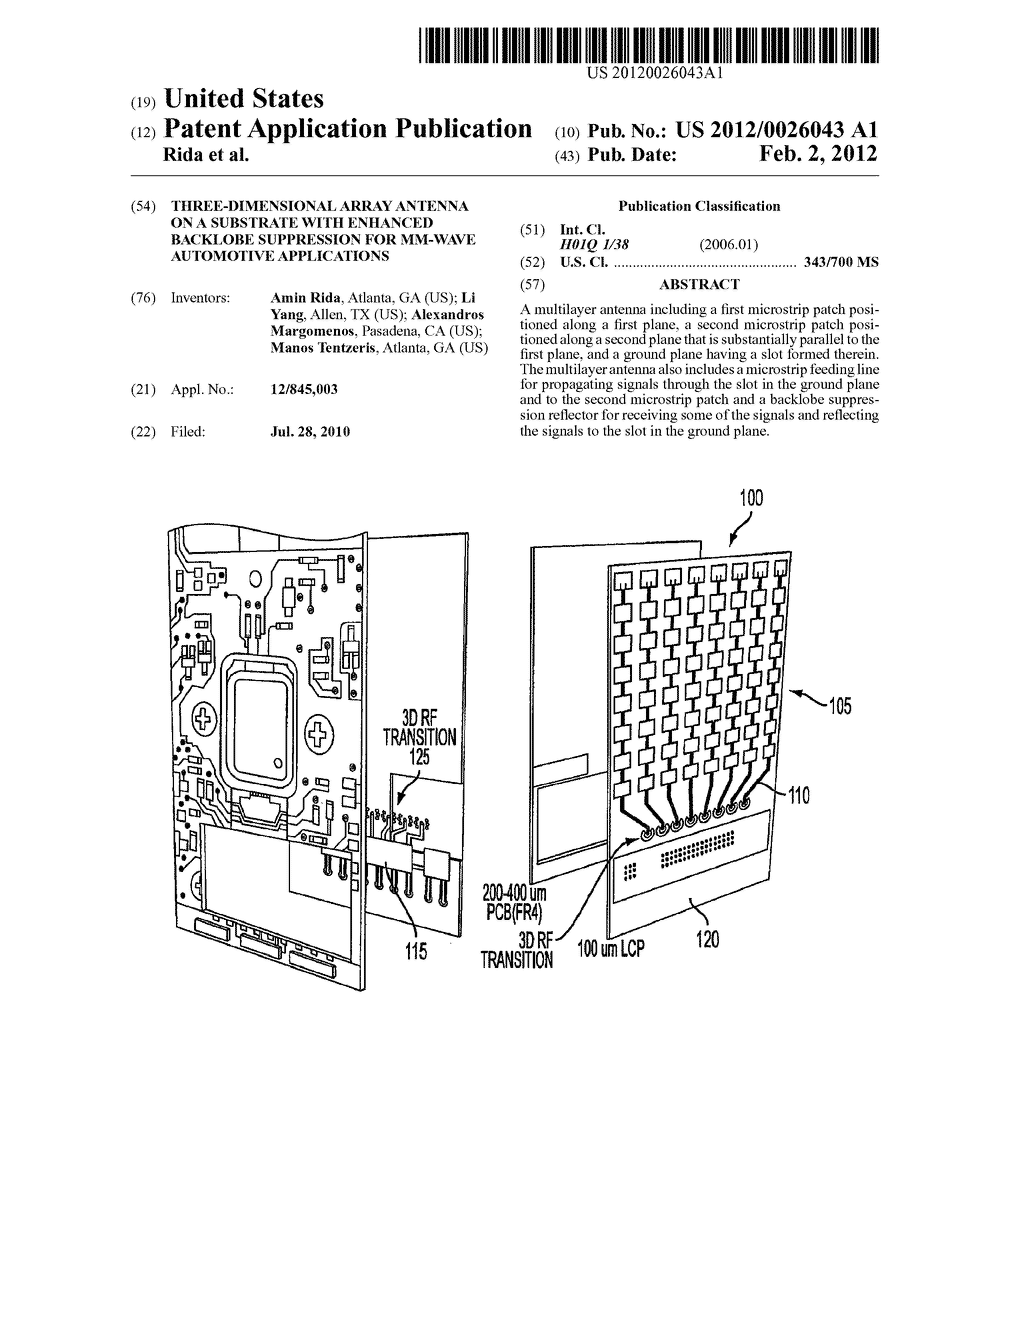 THREE-DIMENSIONAL ARRAY ANTENNA ON A SUBSTRATE WITH ENHANCED